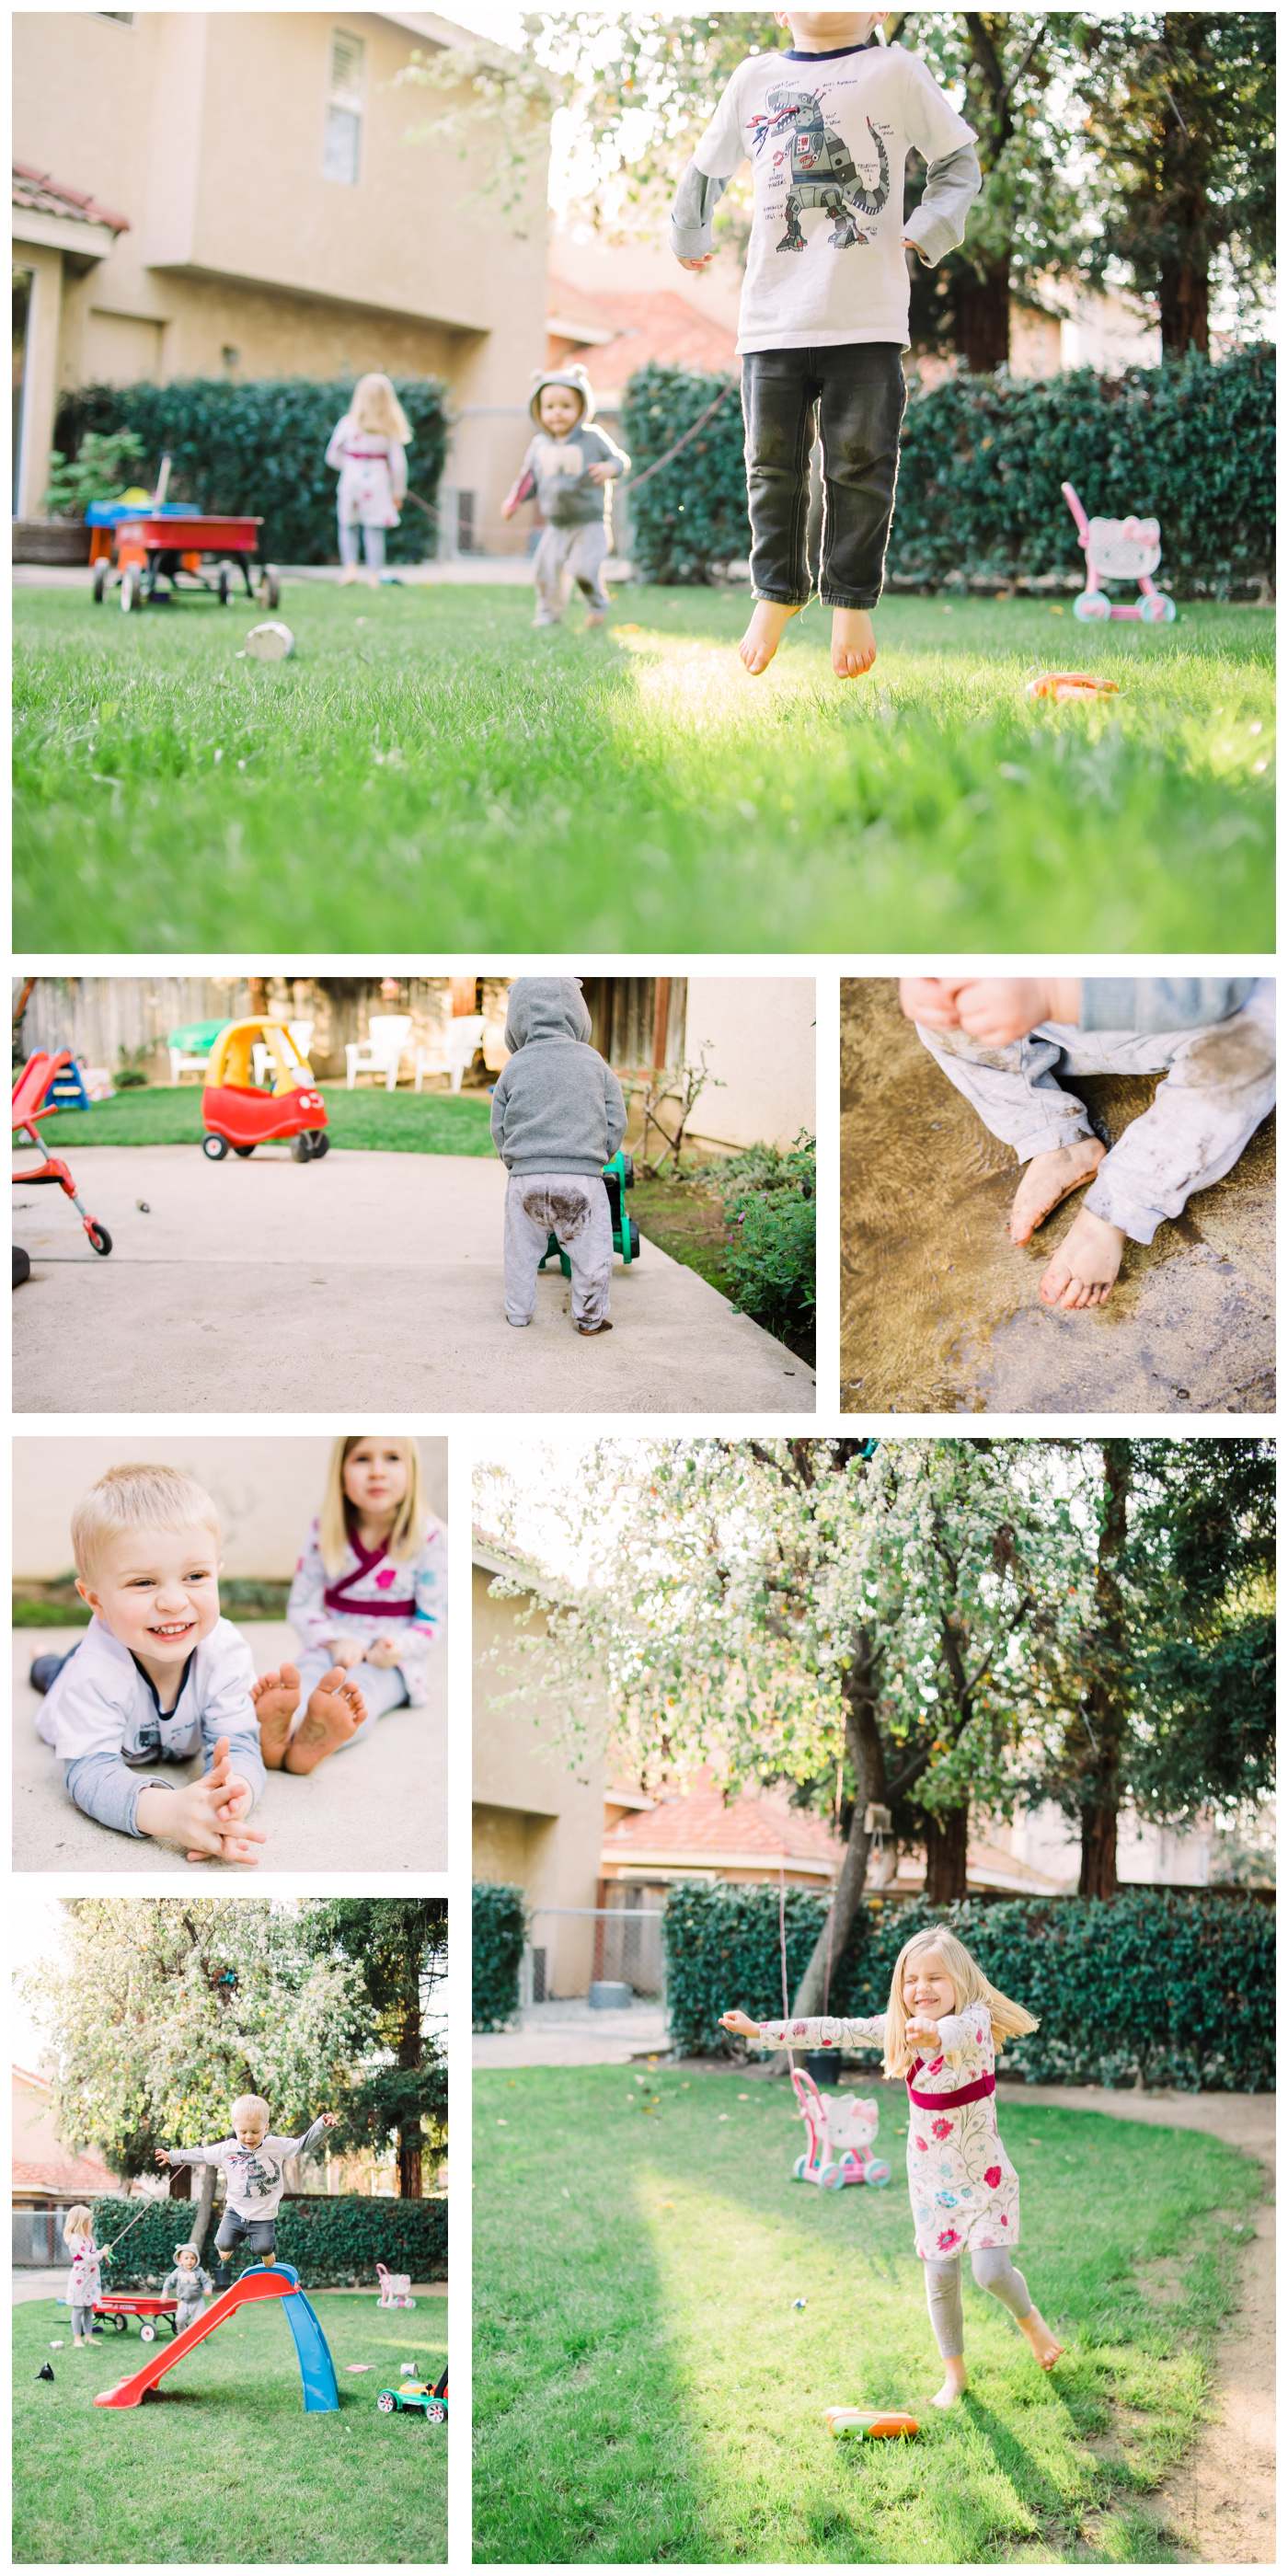 collage of kids playing in a backyard